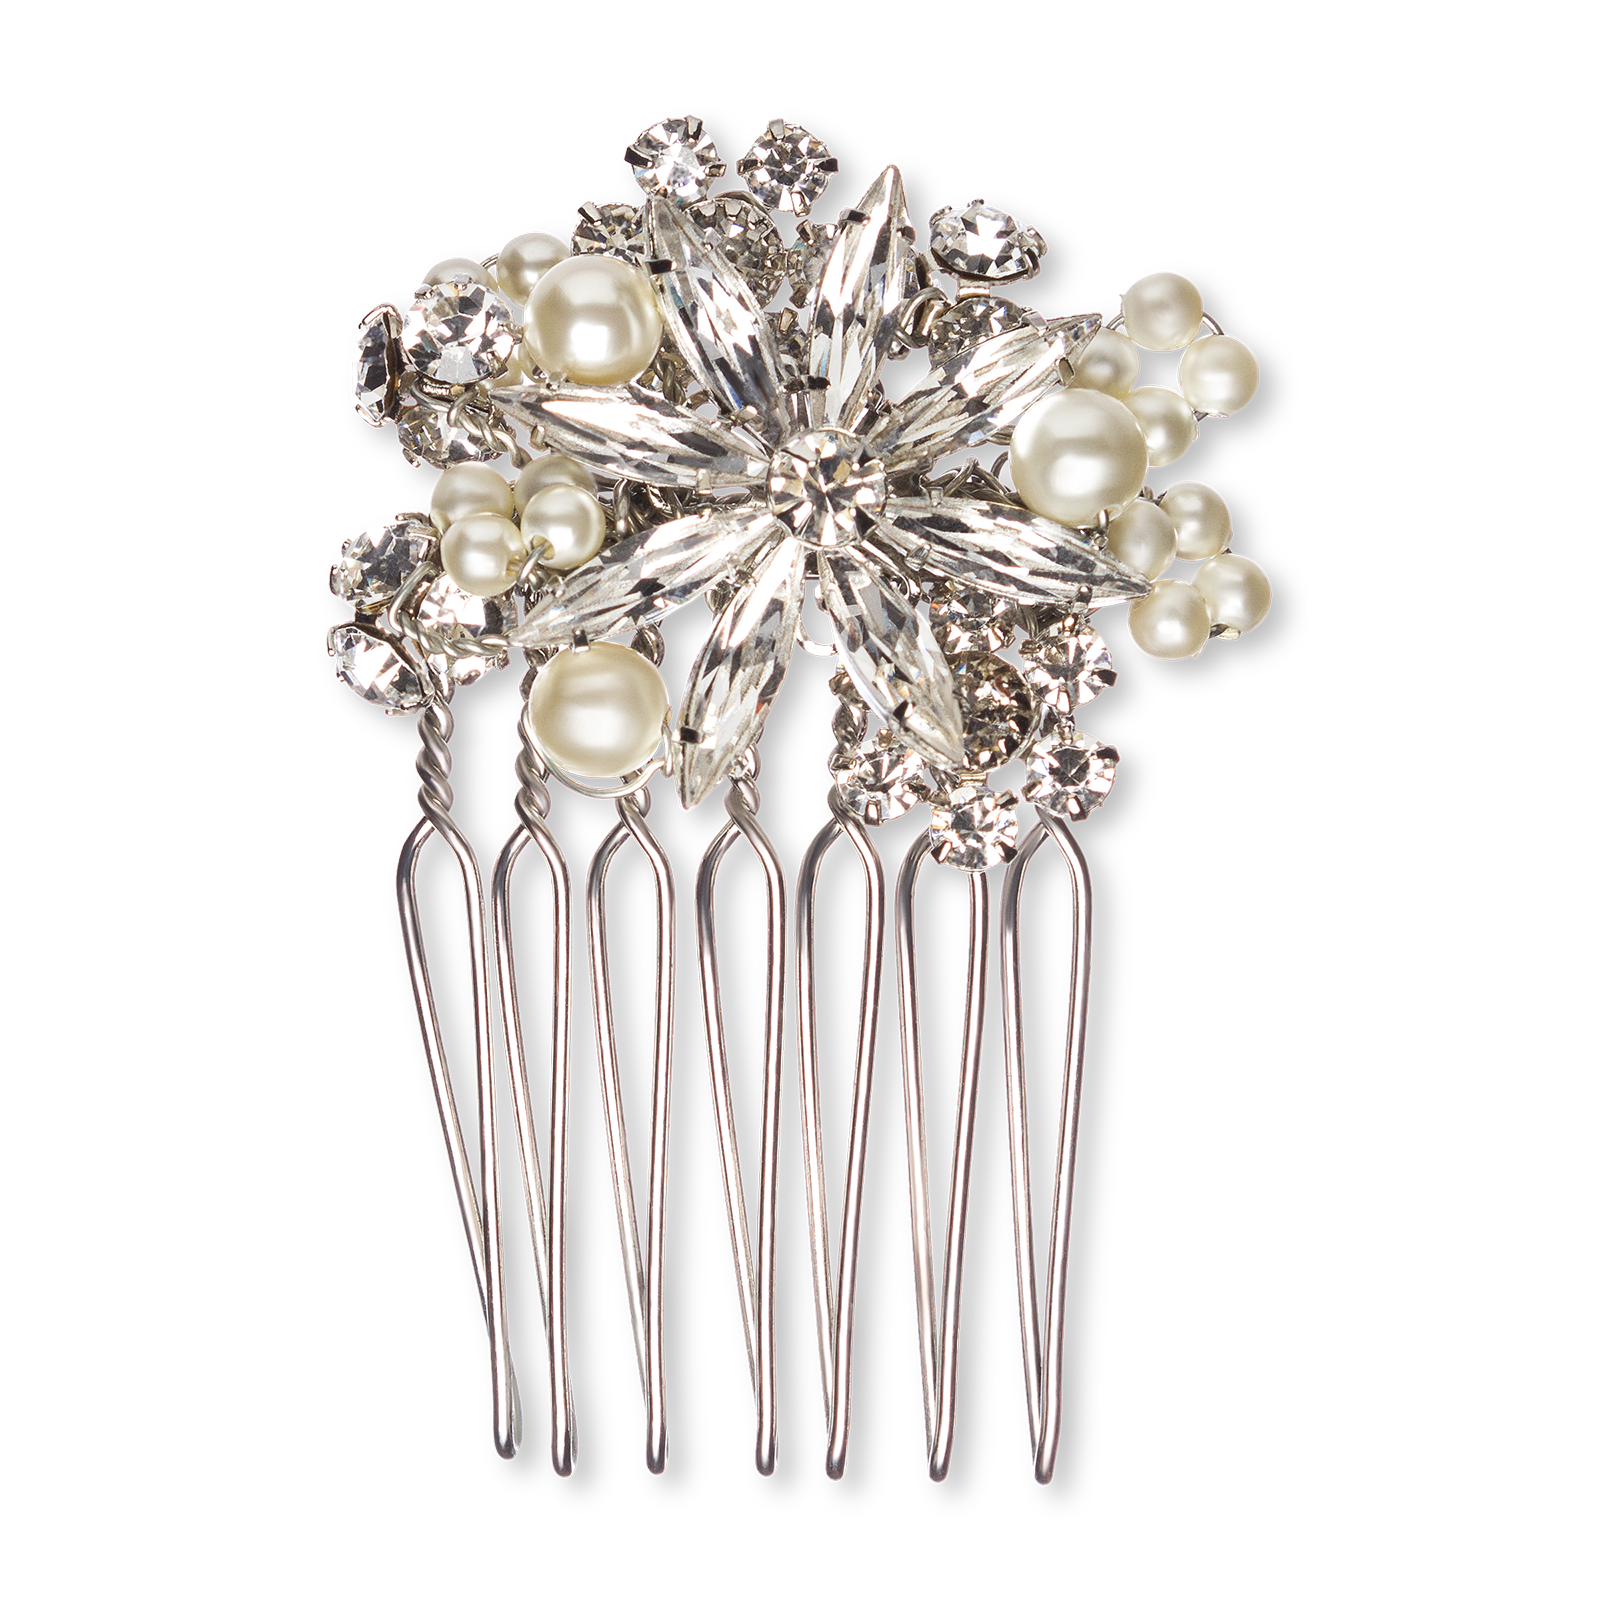 Hair comb product image